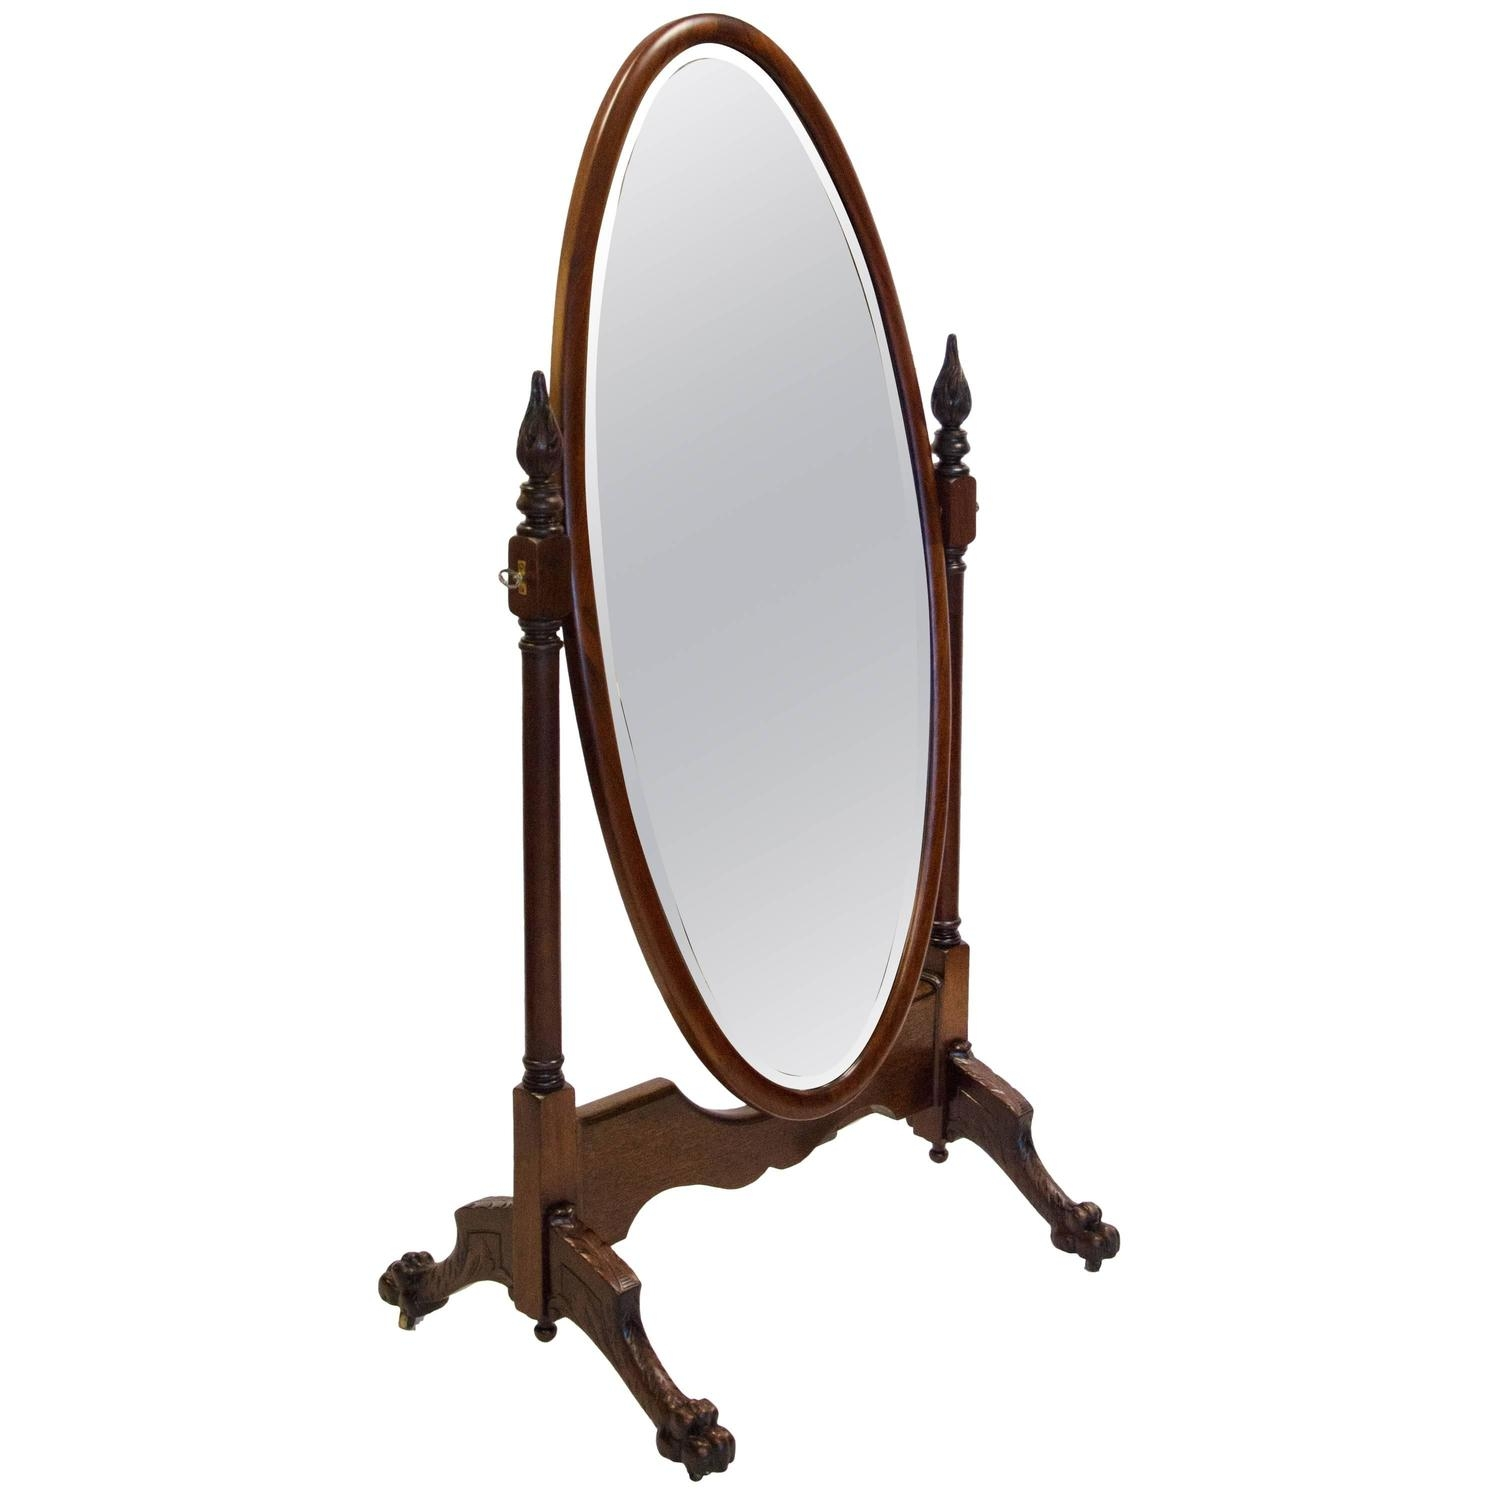 Antique Vintage Floor Mirrors And Full Length Mirrors For Sale Regarding Antique Floor Length Mirror (View 13 of 15)